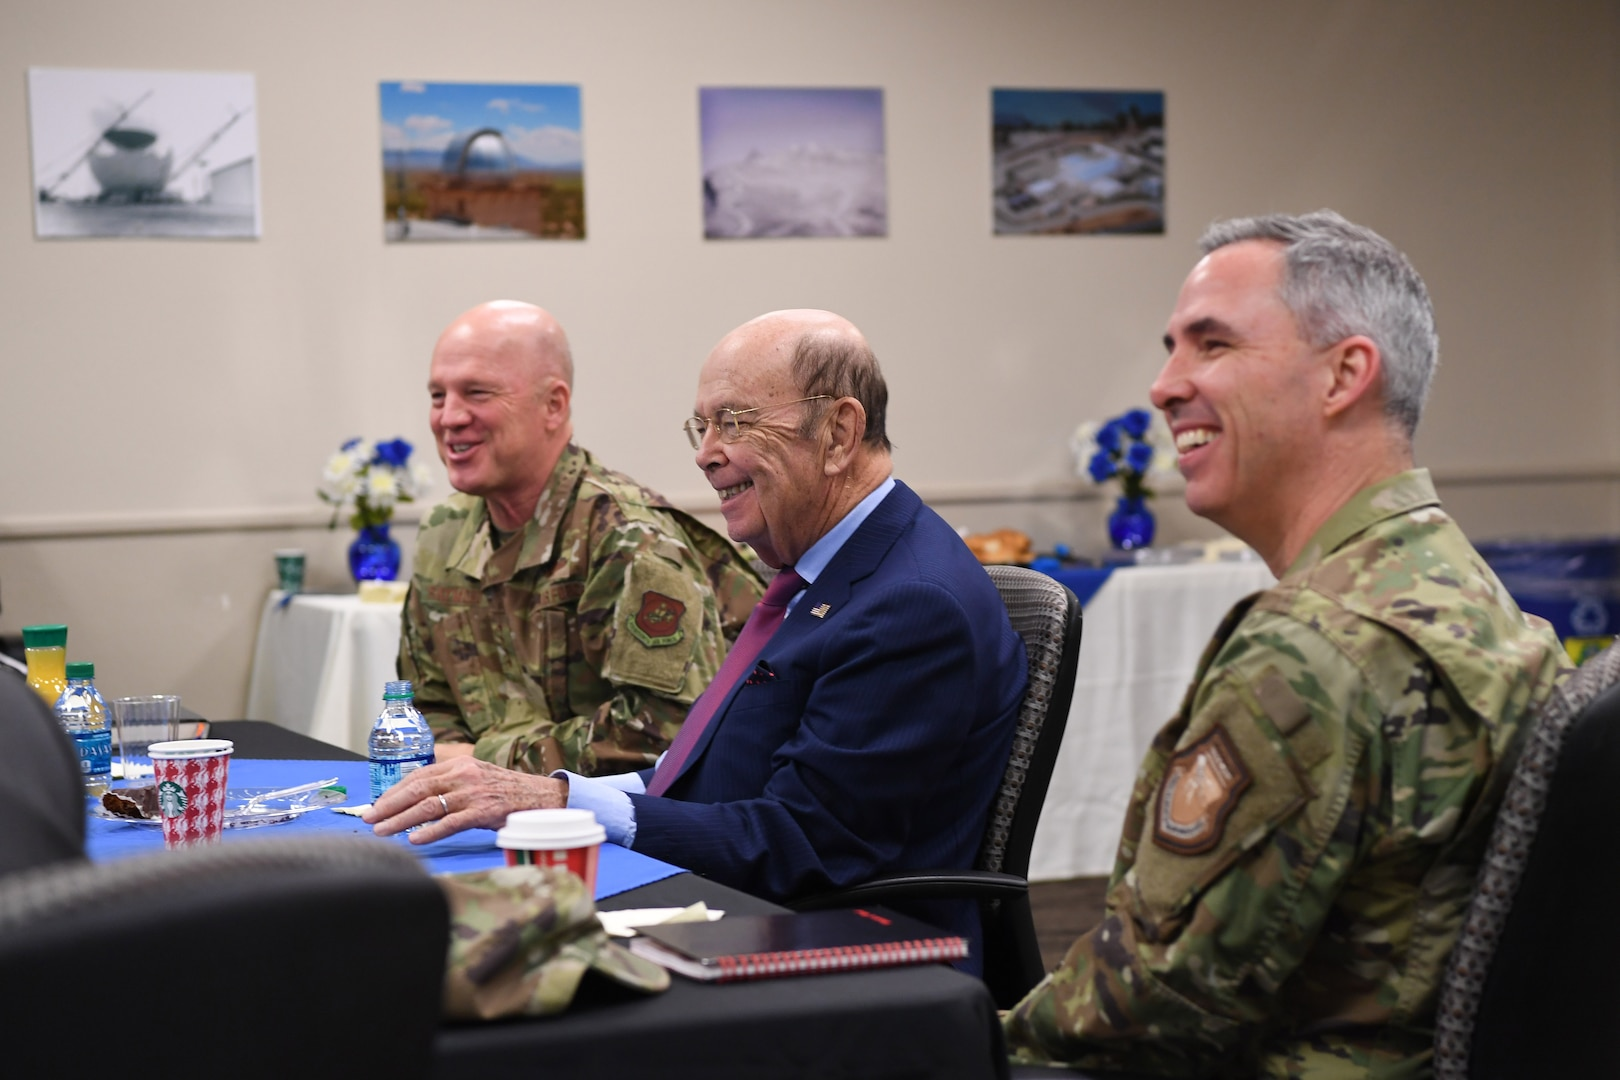 U.S. Secretary of Commerce Wilbur Ross (center), Joint Force Space Component Commander Gen. Jay Raymond (left), and Deputy Joint Force Space Component Commander Maj. Gen. Stephen Whiting (right) receiving a briefing about www.space-track.org in the Combined Space Operations Center at Vandenberg AFB, Calif., Nov. 30, 2018. Secretary Ross met with service members from the 18th Space Control Squadron, Combined Space Operations Center, Joint Force Space Component Command and U.S. Strategic Command to discuss Space Situational Awareness capabilities and space operations during a visit here Nov. 29-30. Secretary Ross also spoke with service members about the Department of Defense transitioning non-military aspects of Space Situational Awareness and space safety monitoring and responsibilities to the Department of Commerce. (U.S. Air Force photo by Maj. Cody Chiles)